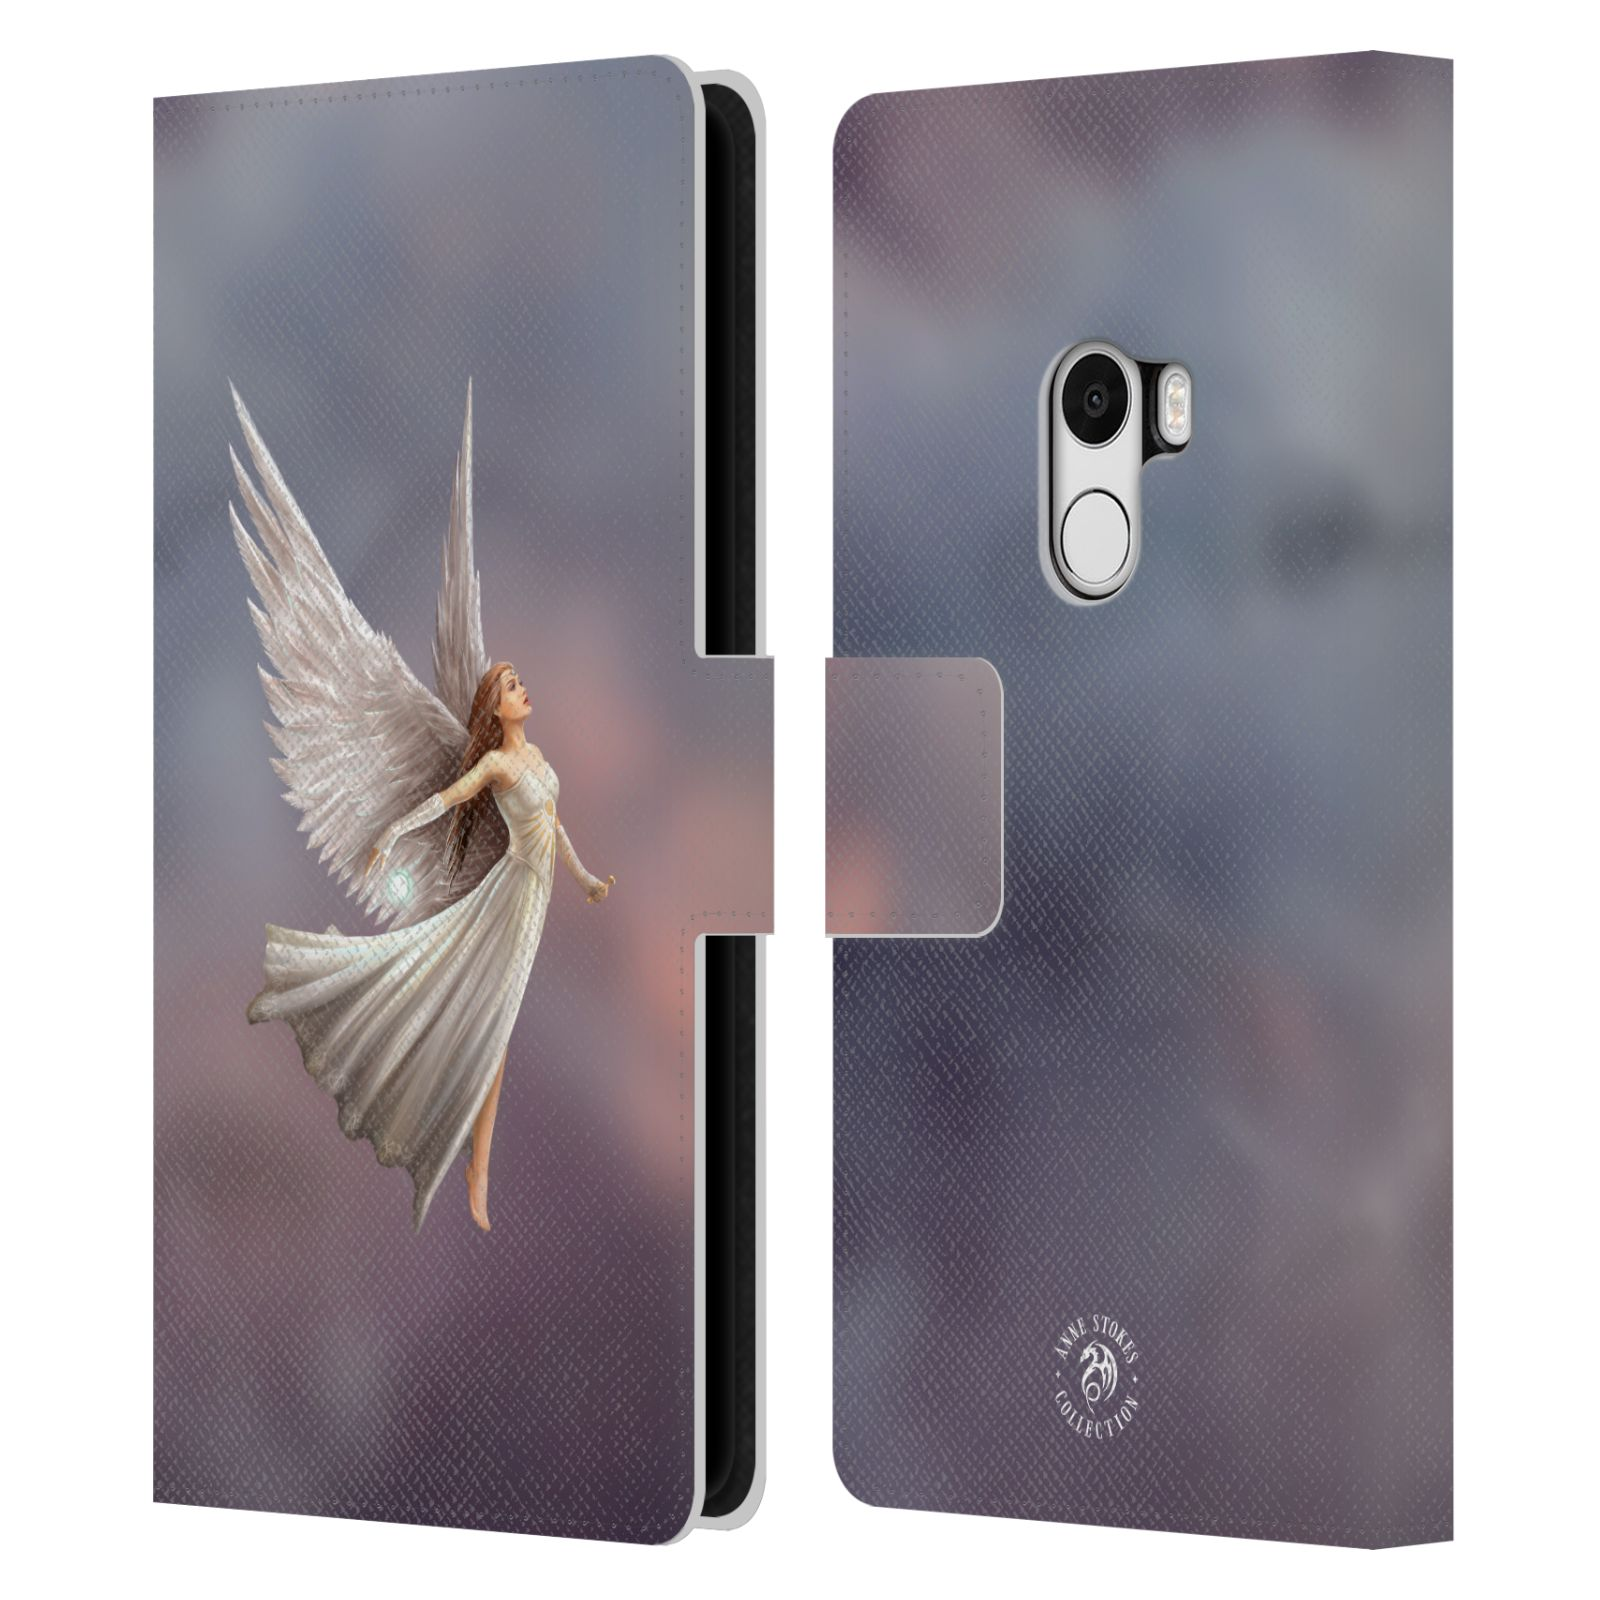 OFFICIAL-ANNE-STOKES-MERMAID-AND-ANGELS-LEATHER-BOOK-CASE-FOR-XIAOMI-PHONES